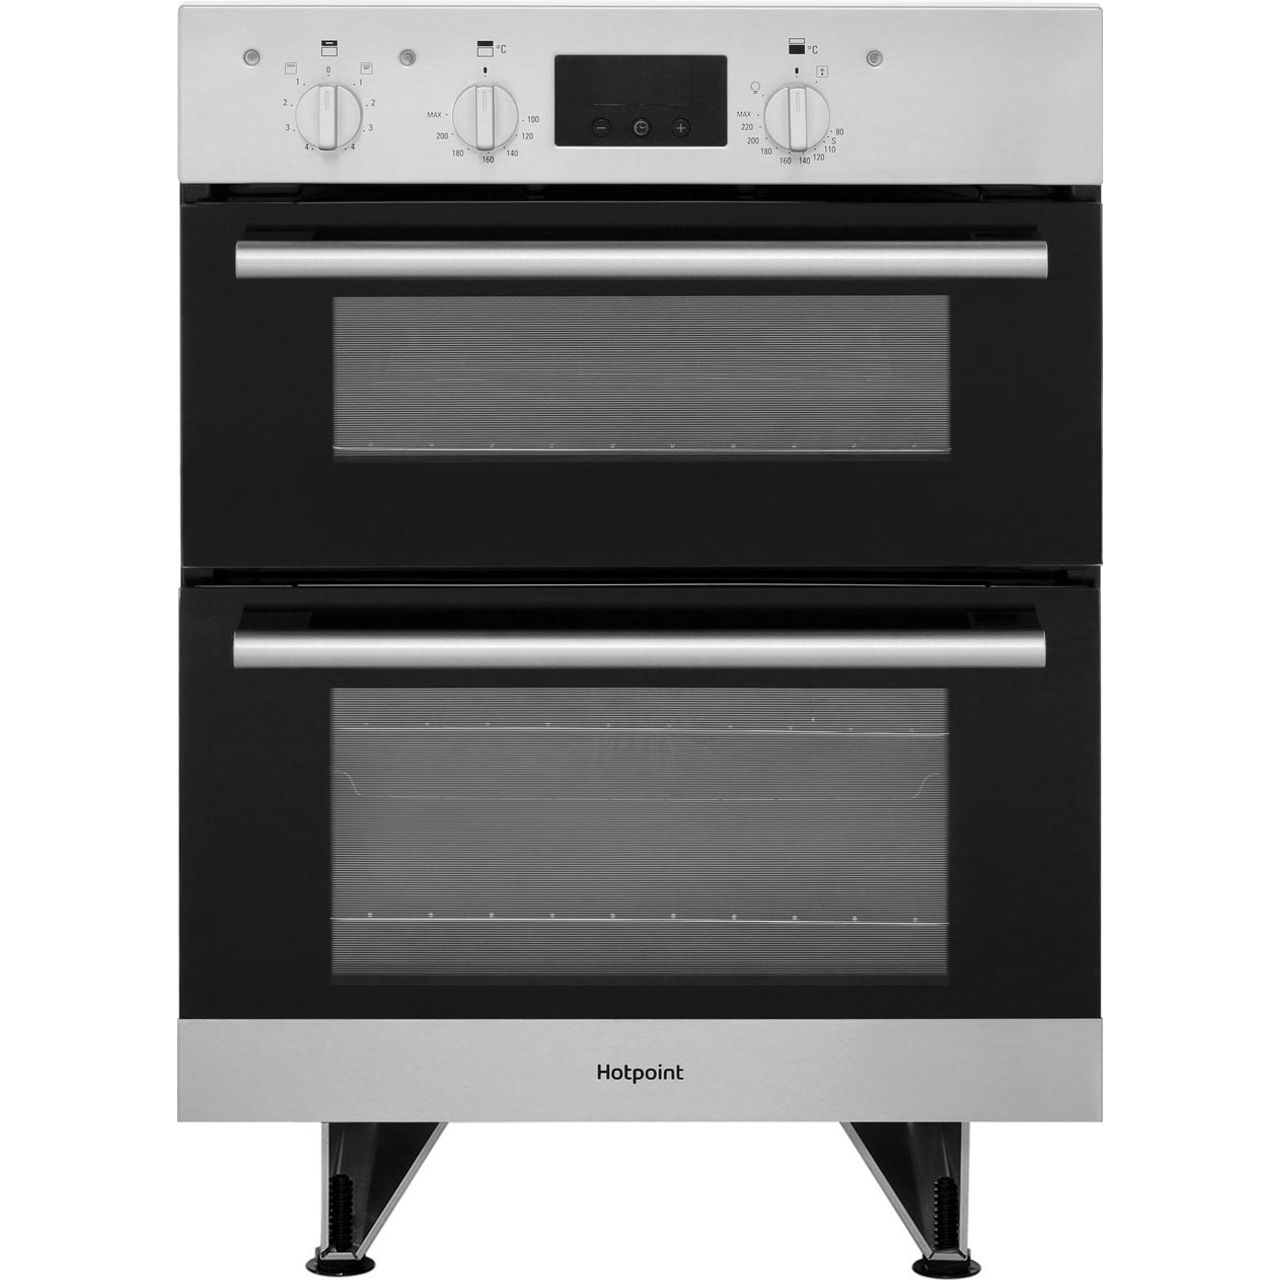 hotpoint du2540ix class 2 built under 60cm electric double oven stainless steel ebay. Black Bedroom Furniture Sets. Home Design Ideas